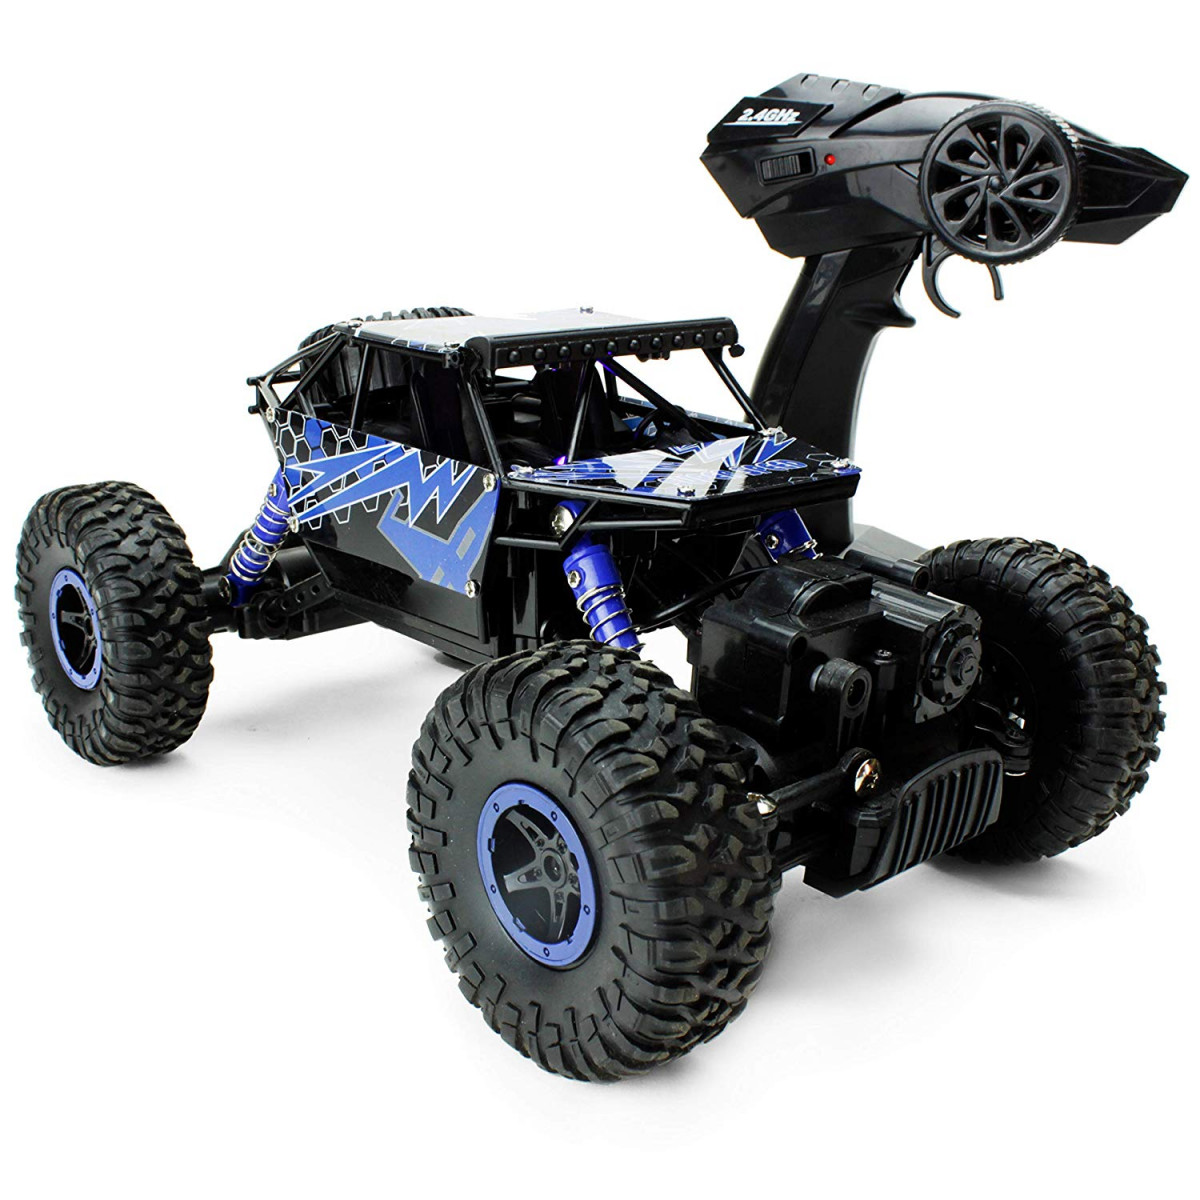 Boley 2099 - Lightning Raider - Radio Control, 4-Wheel Drive, All-Terrain  Climber - Action-Packed RC Car Toy for Boys and Girls - Durable, Easy to